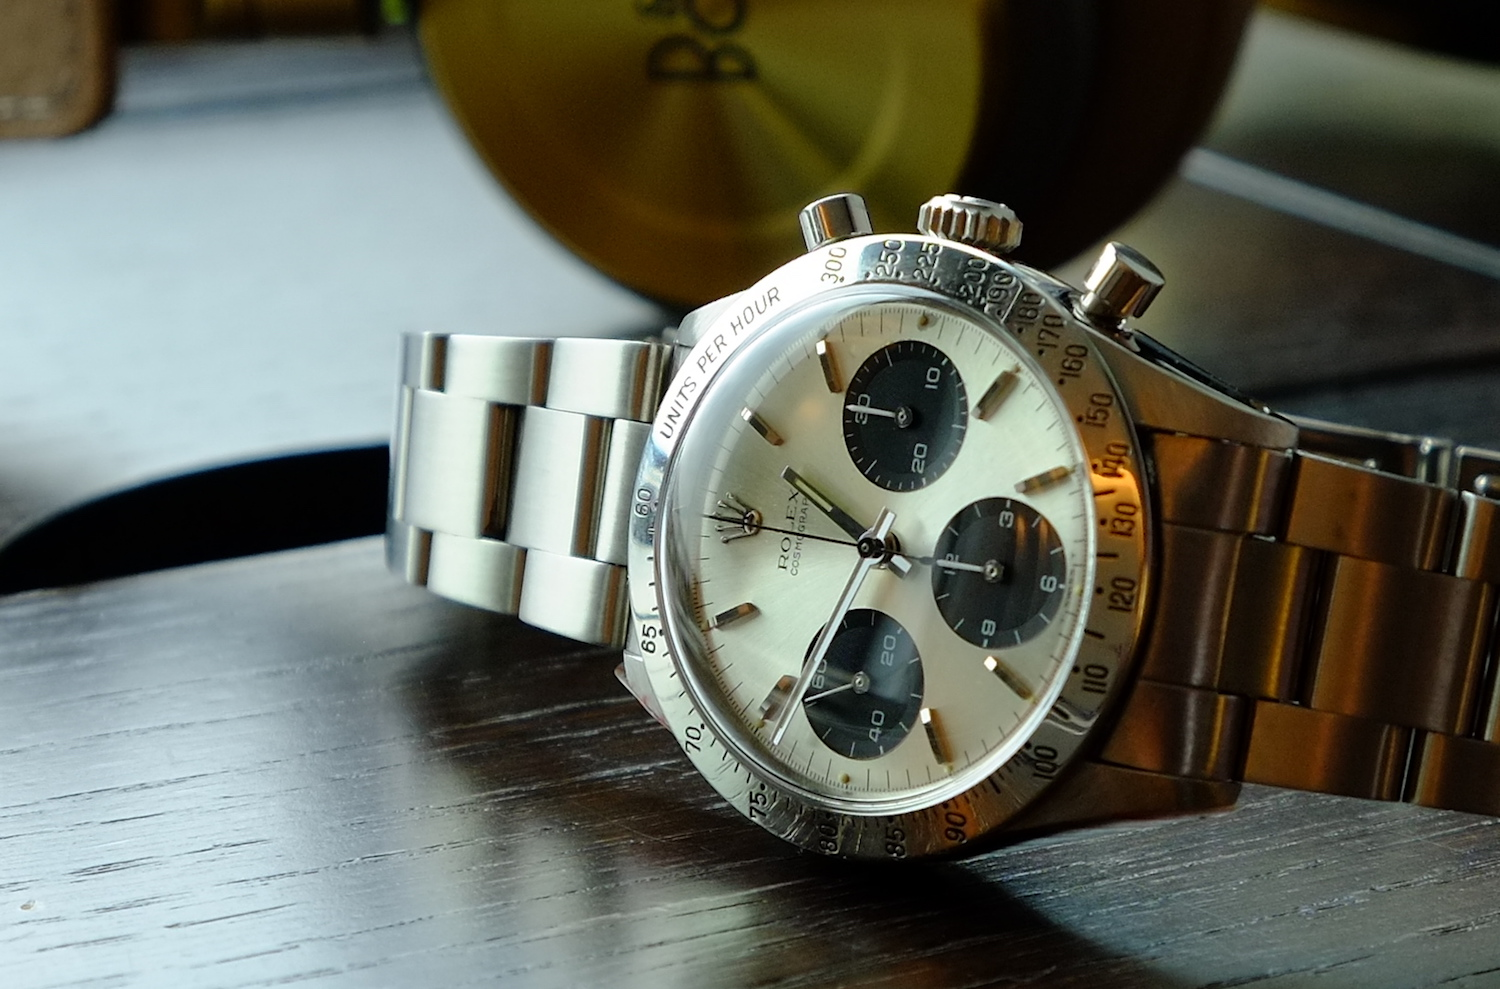 Rolex Daytona 6239 vintage early edition - Collectors Series - Kristian Haagen - 7